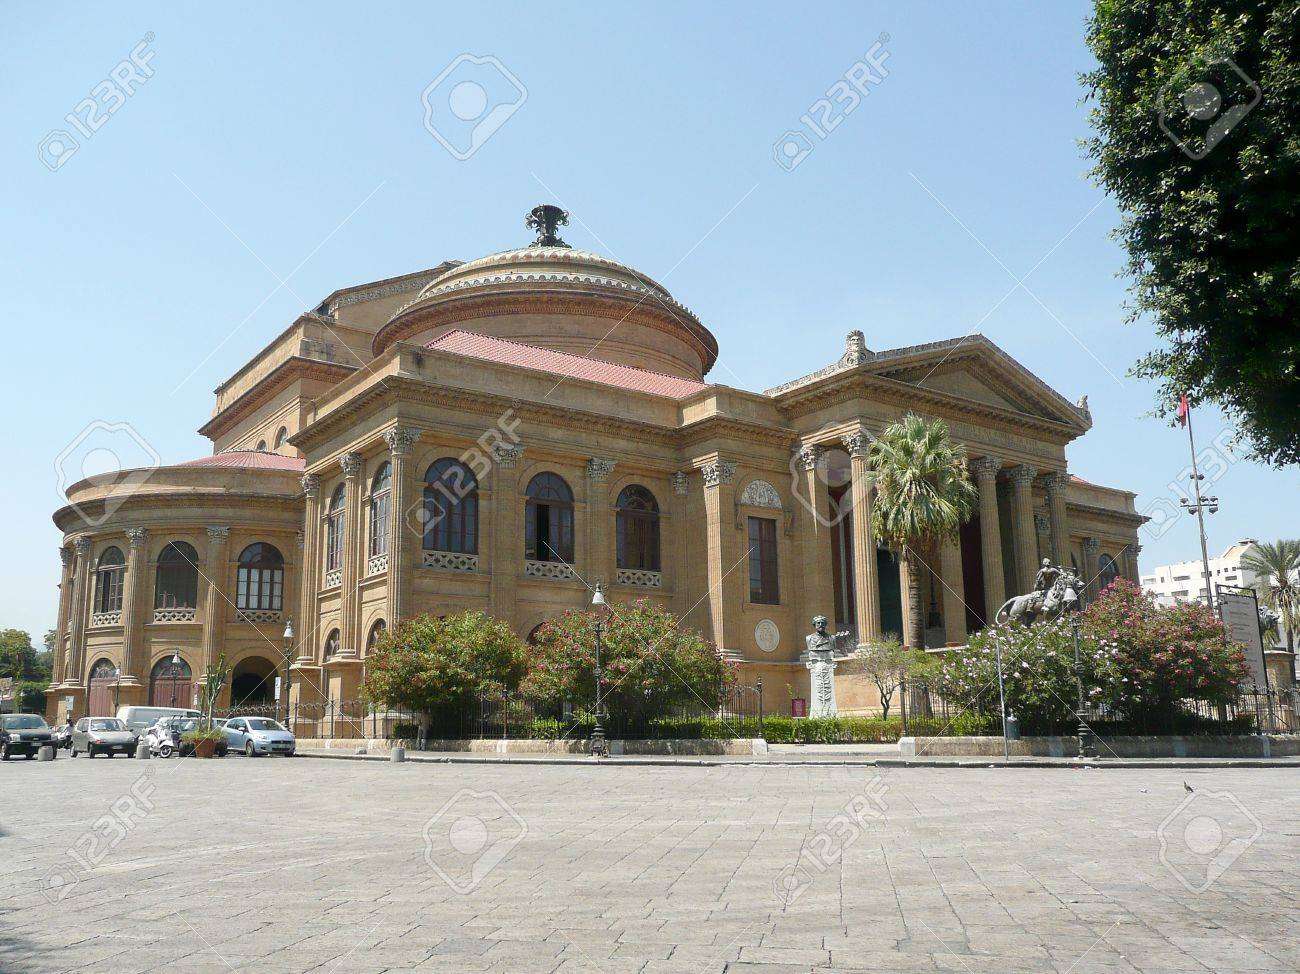 Teatro Massimo Opera House, Palermo, Italy Stock Photo, Picture And ...